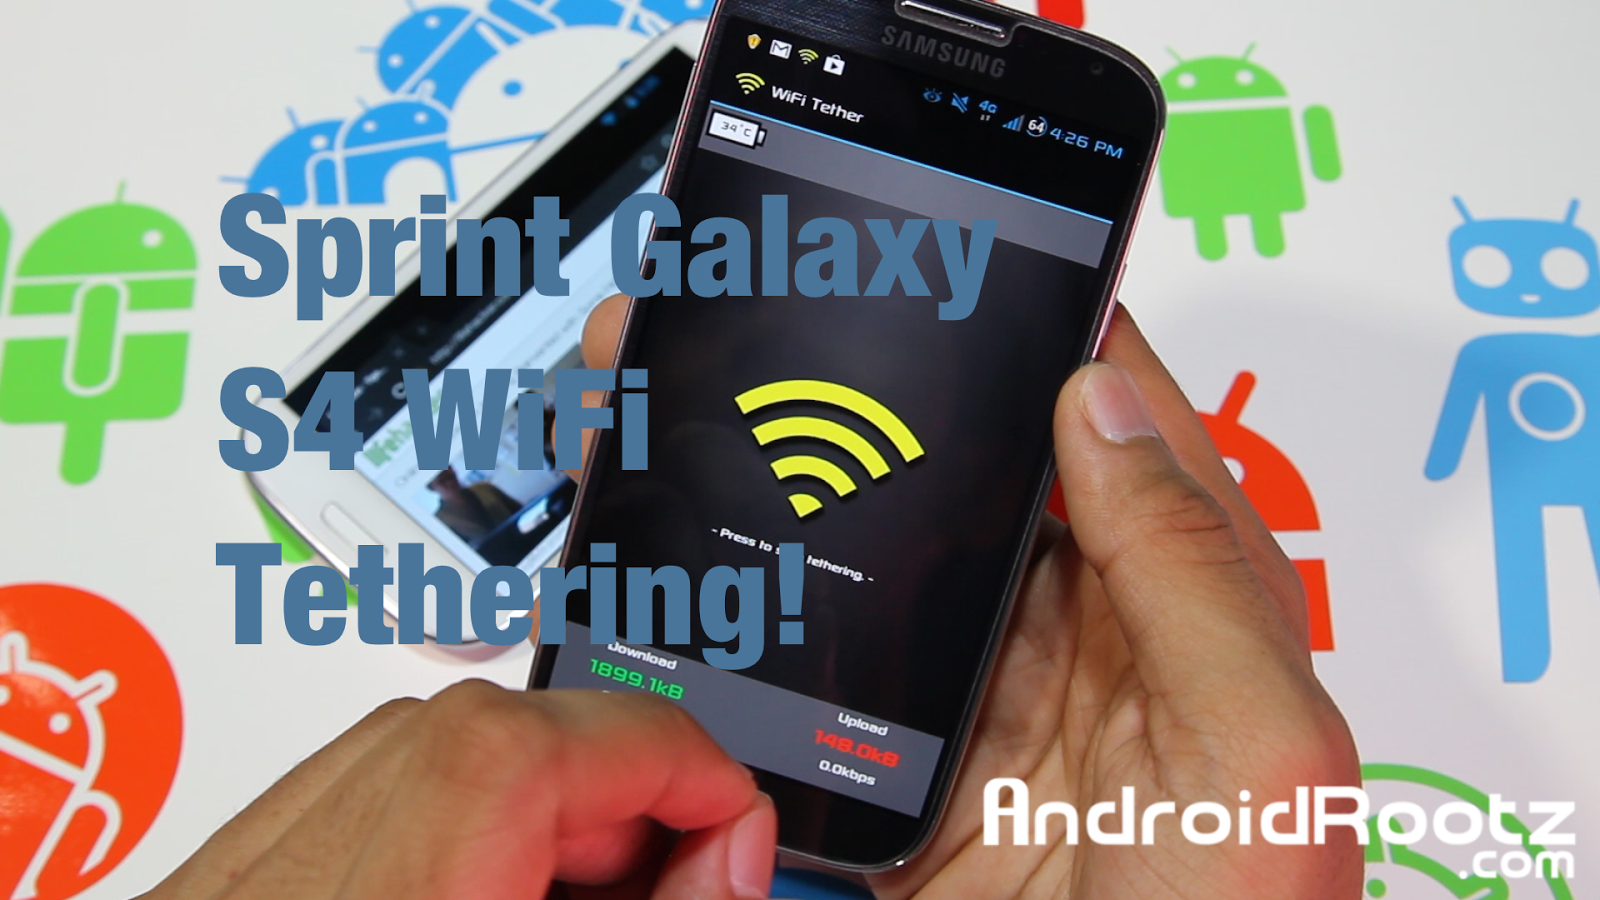 How to Get Free WiFi Tethering/Hotspot on Sprint Galaxy S4 SPH-L720!